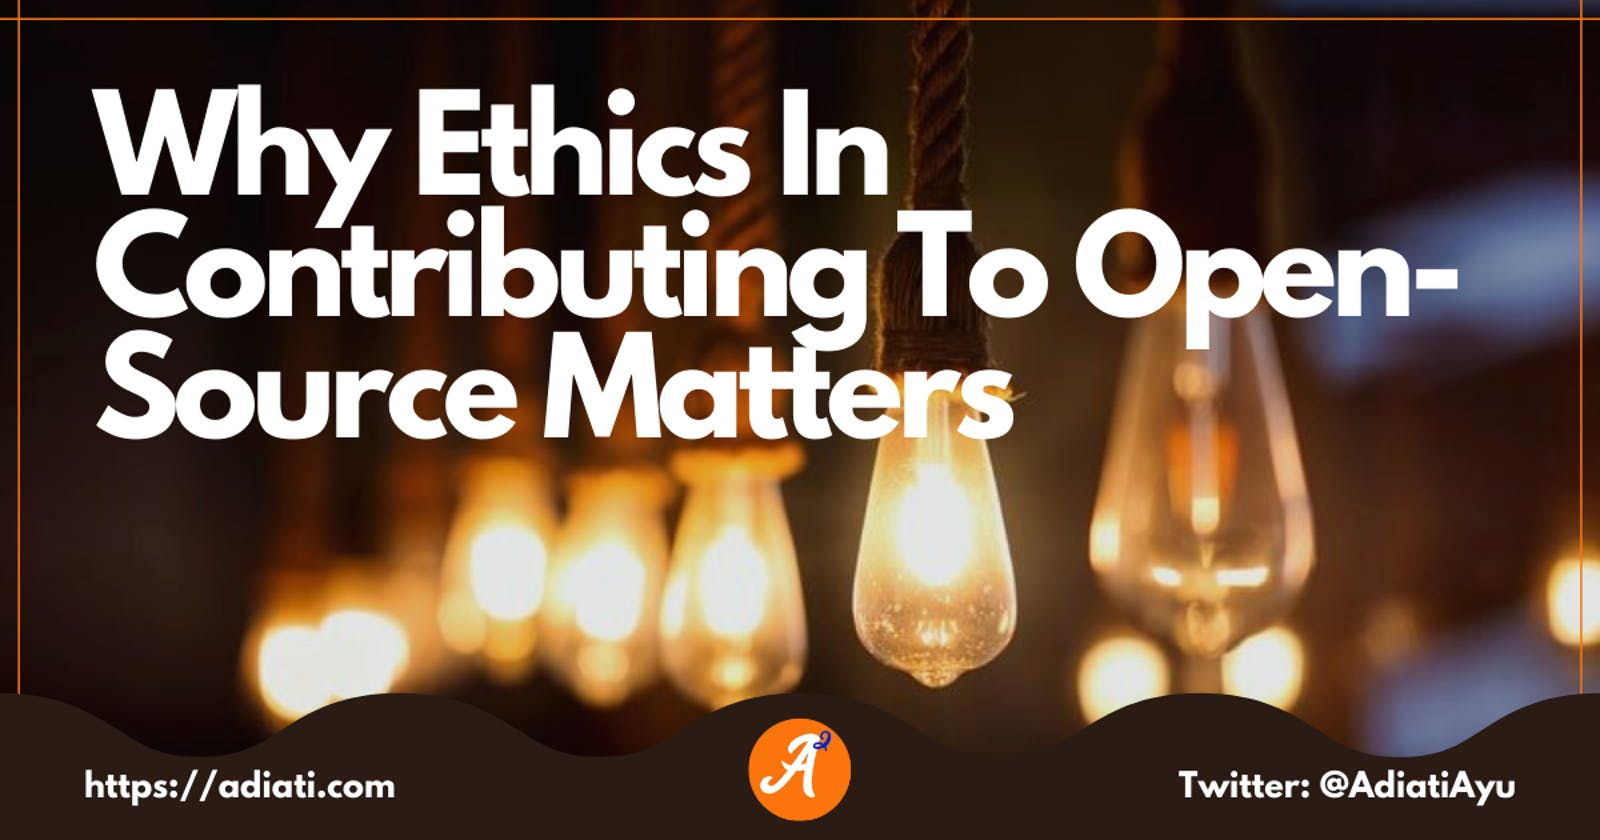 Why Ethics In Contributing To Open-Source Matters